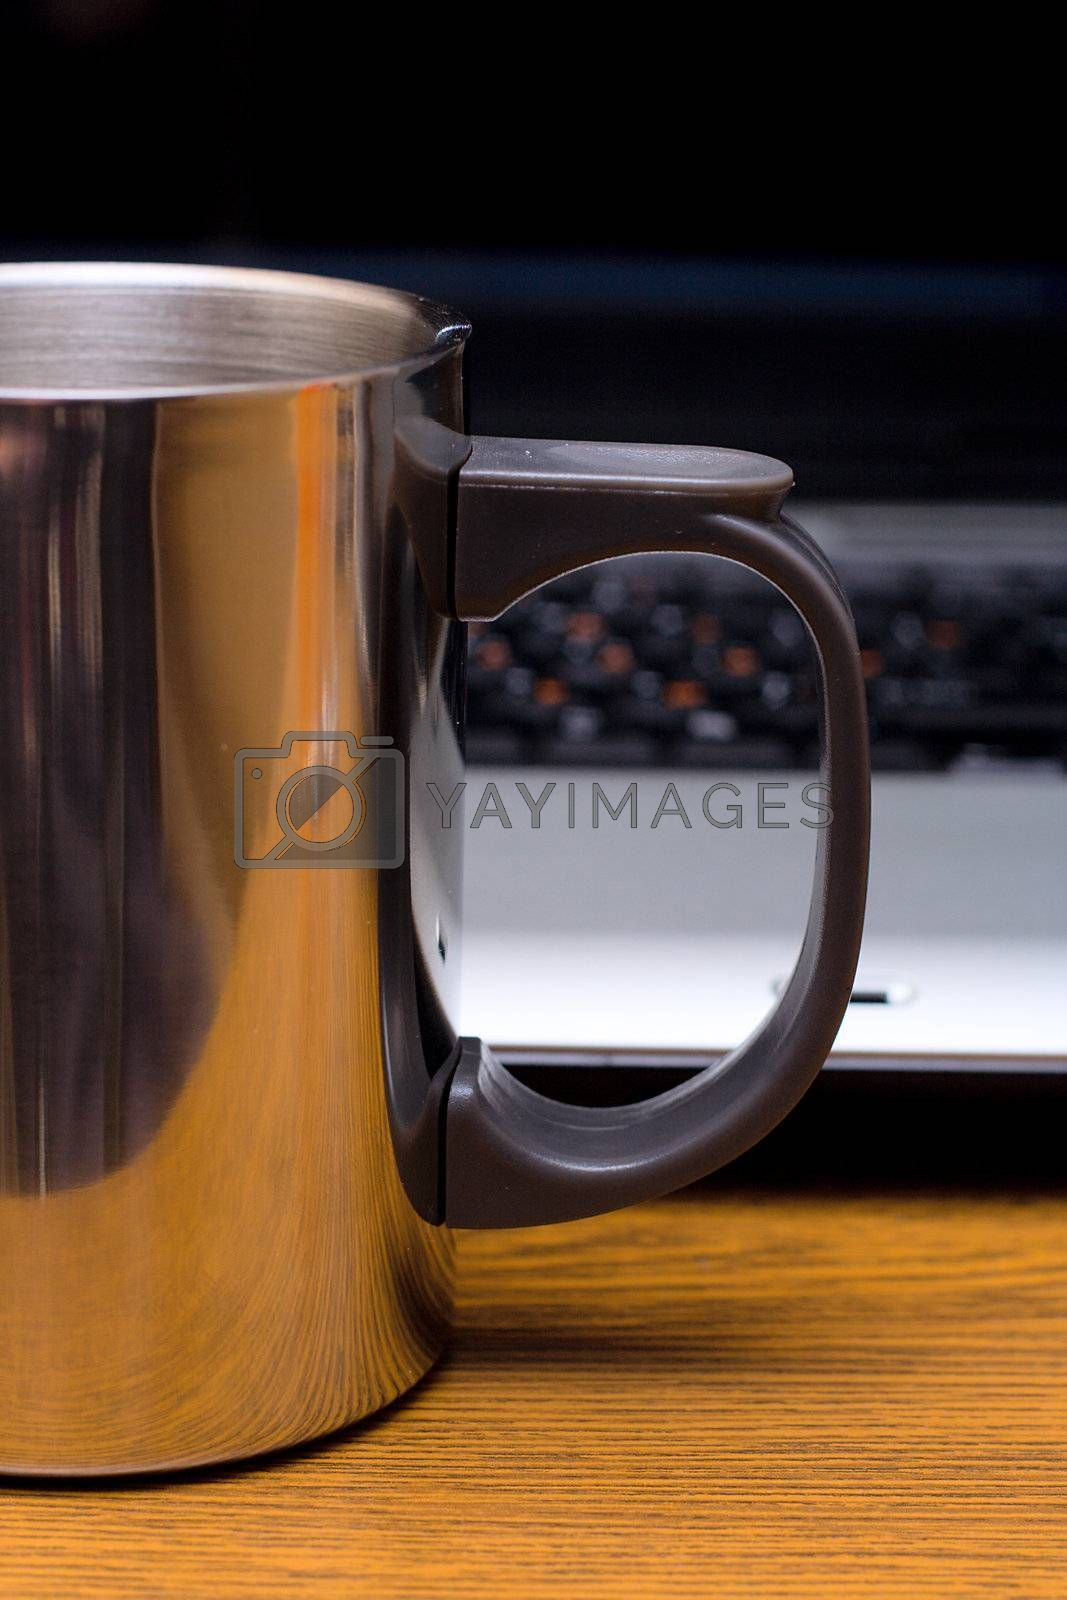 metal cup before laptop, on wooden table